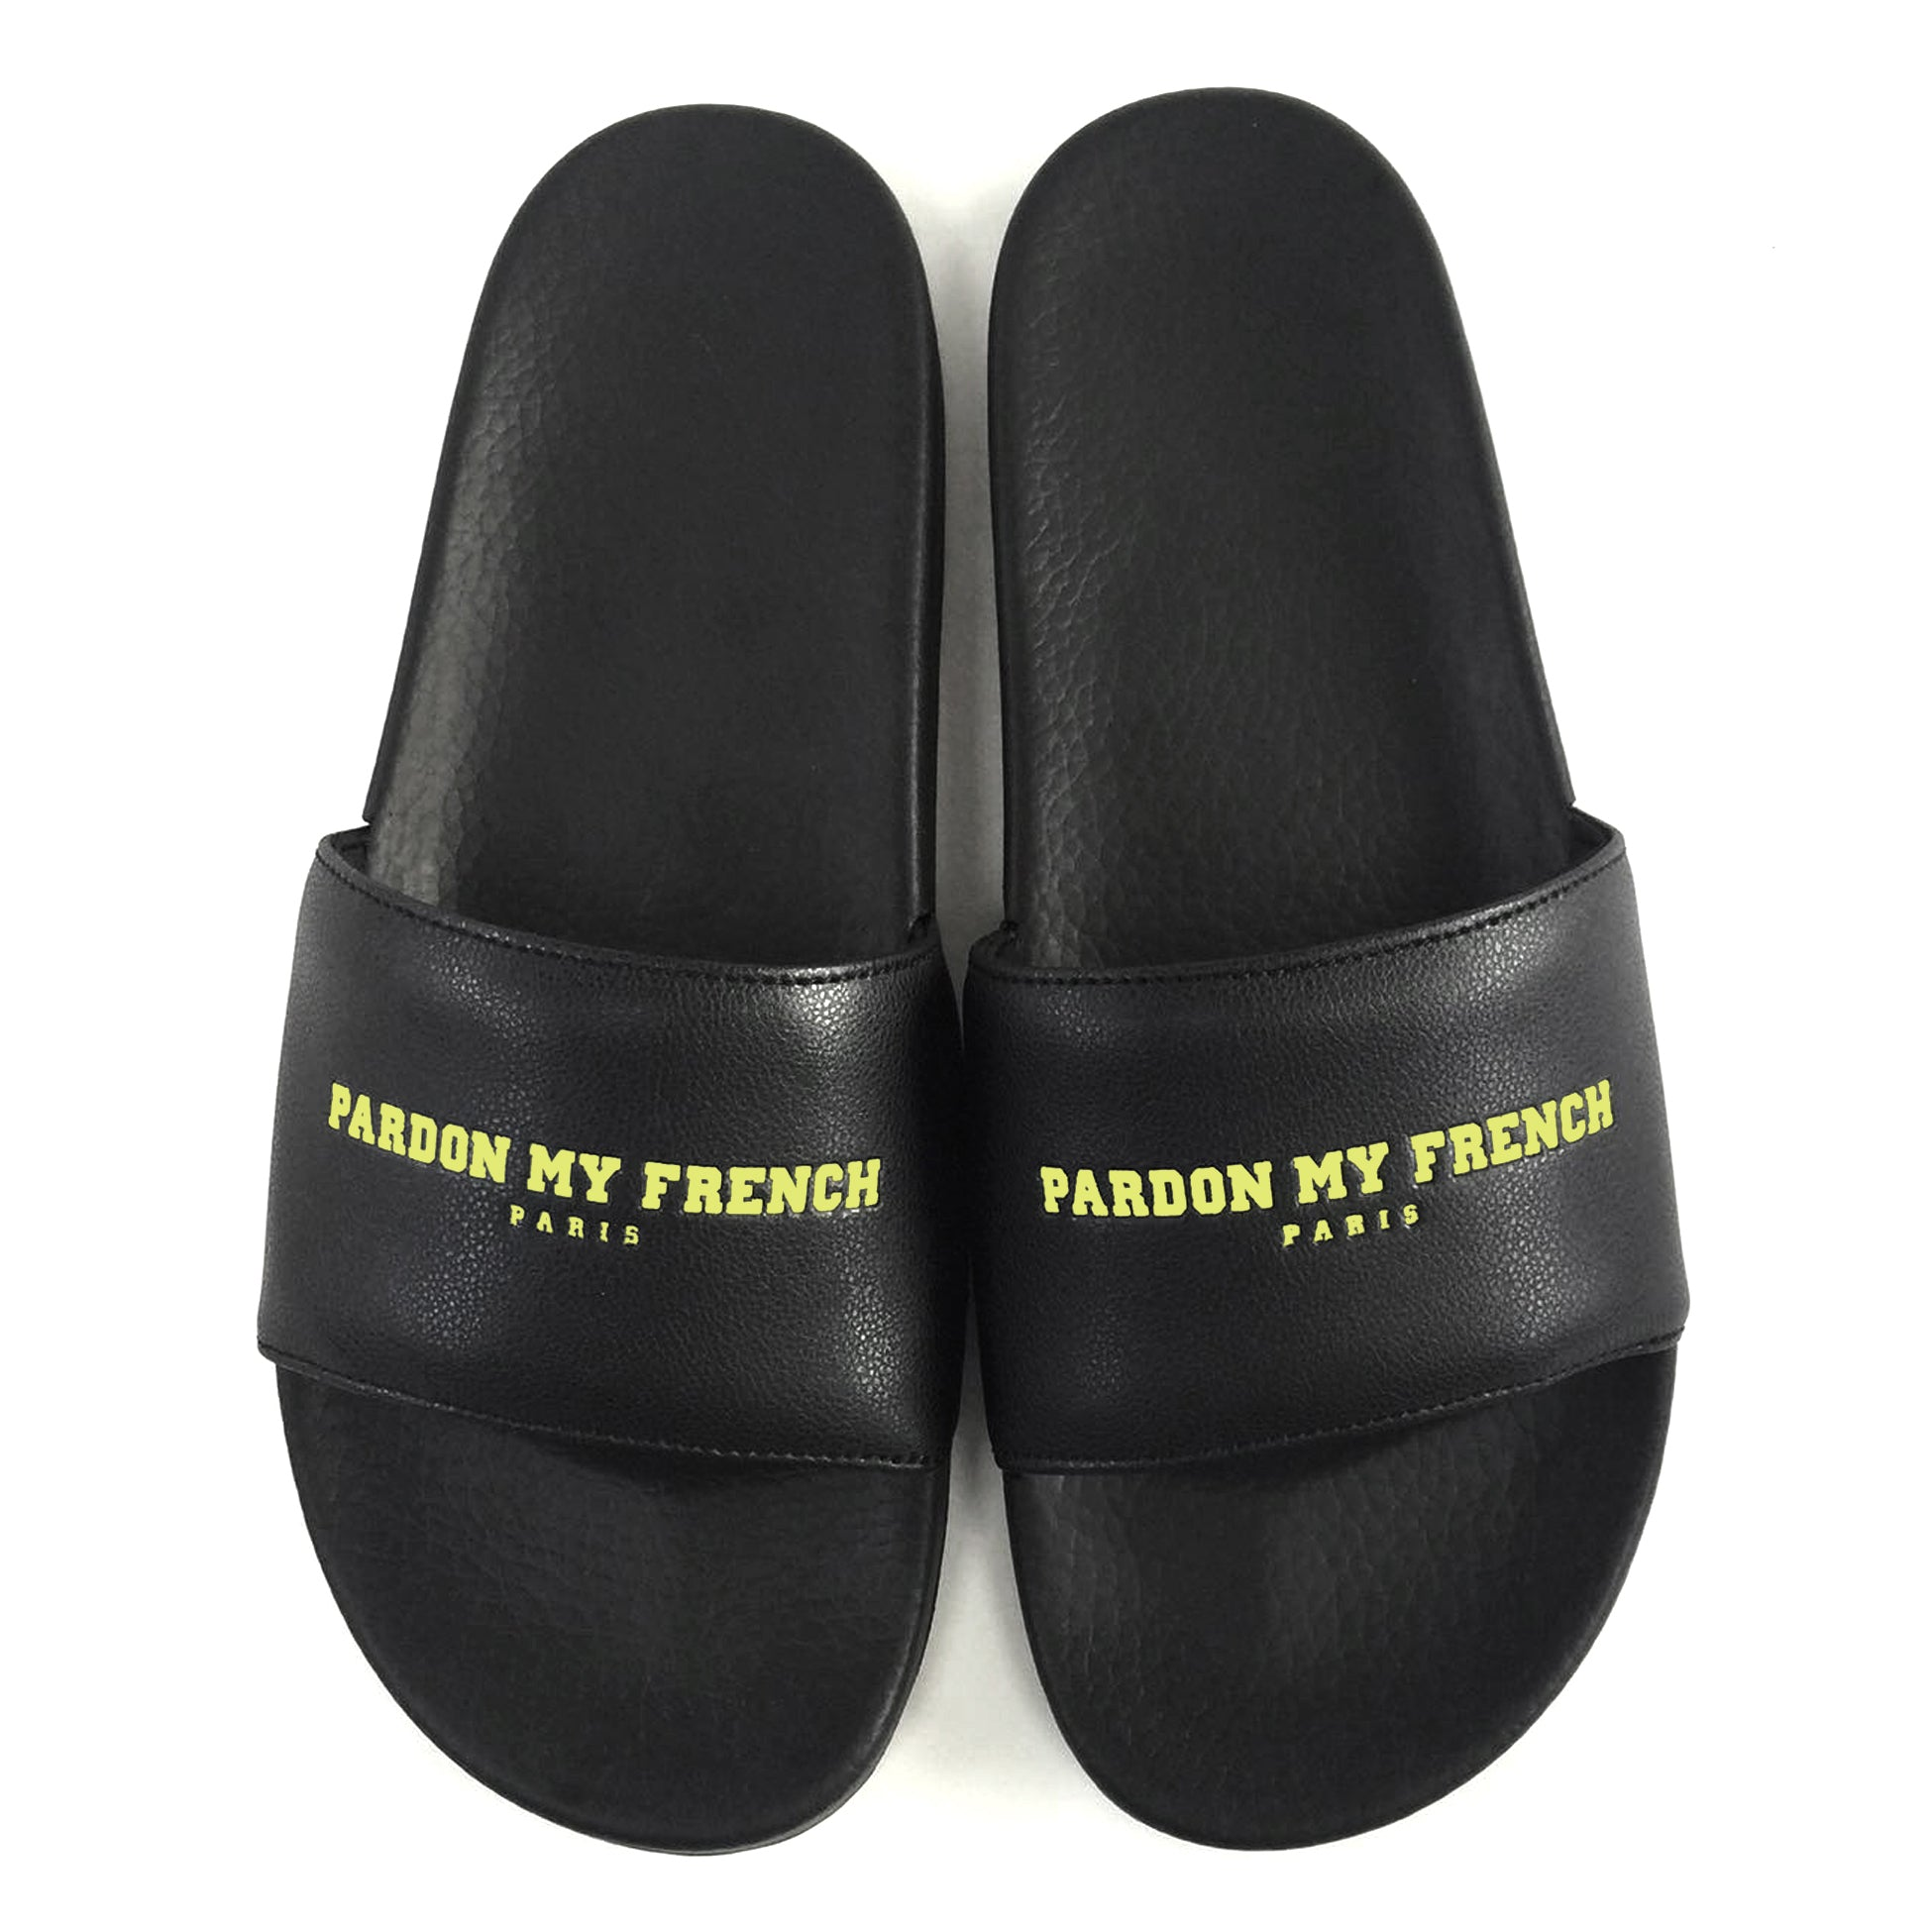 SANDALS PMF - PARIS EDITION LEMON PRINT